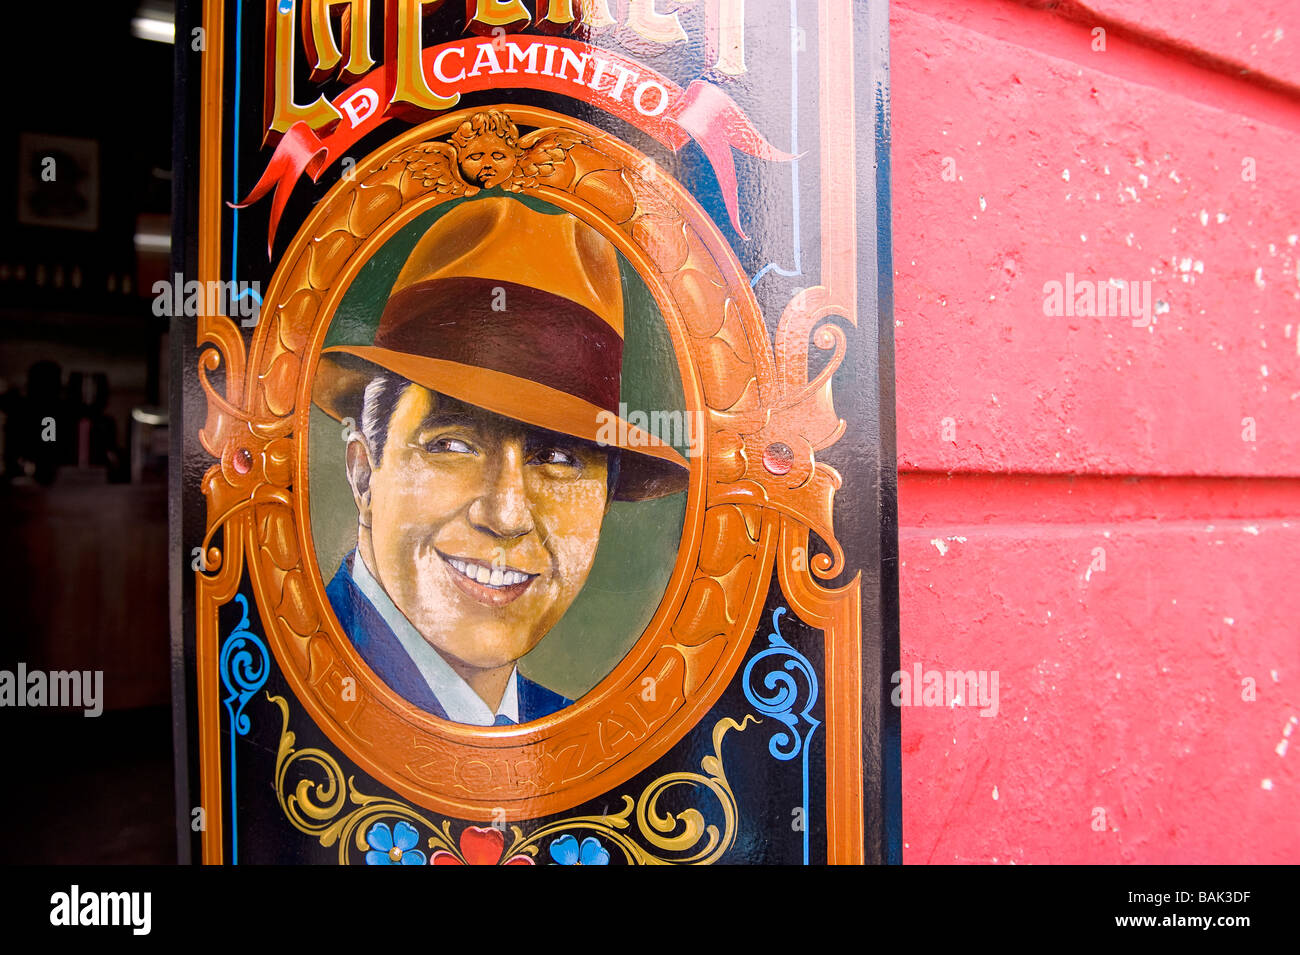 Argentinien, Buenos Aires, La Boca District, Carlos Gardel Stockbild